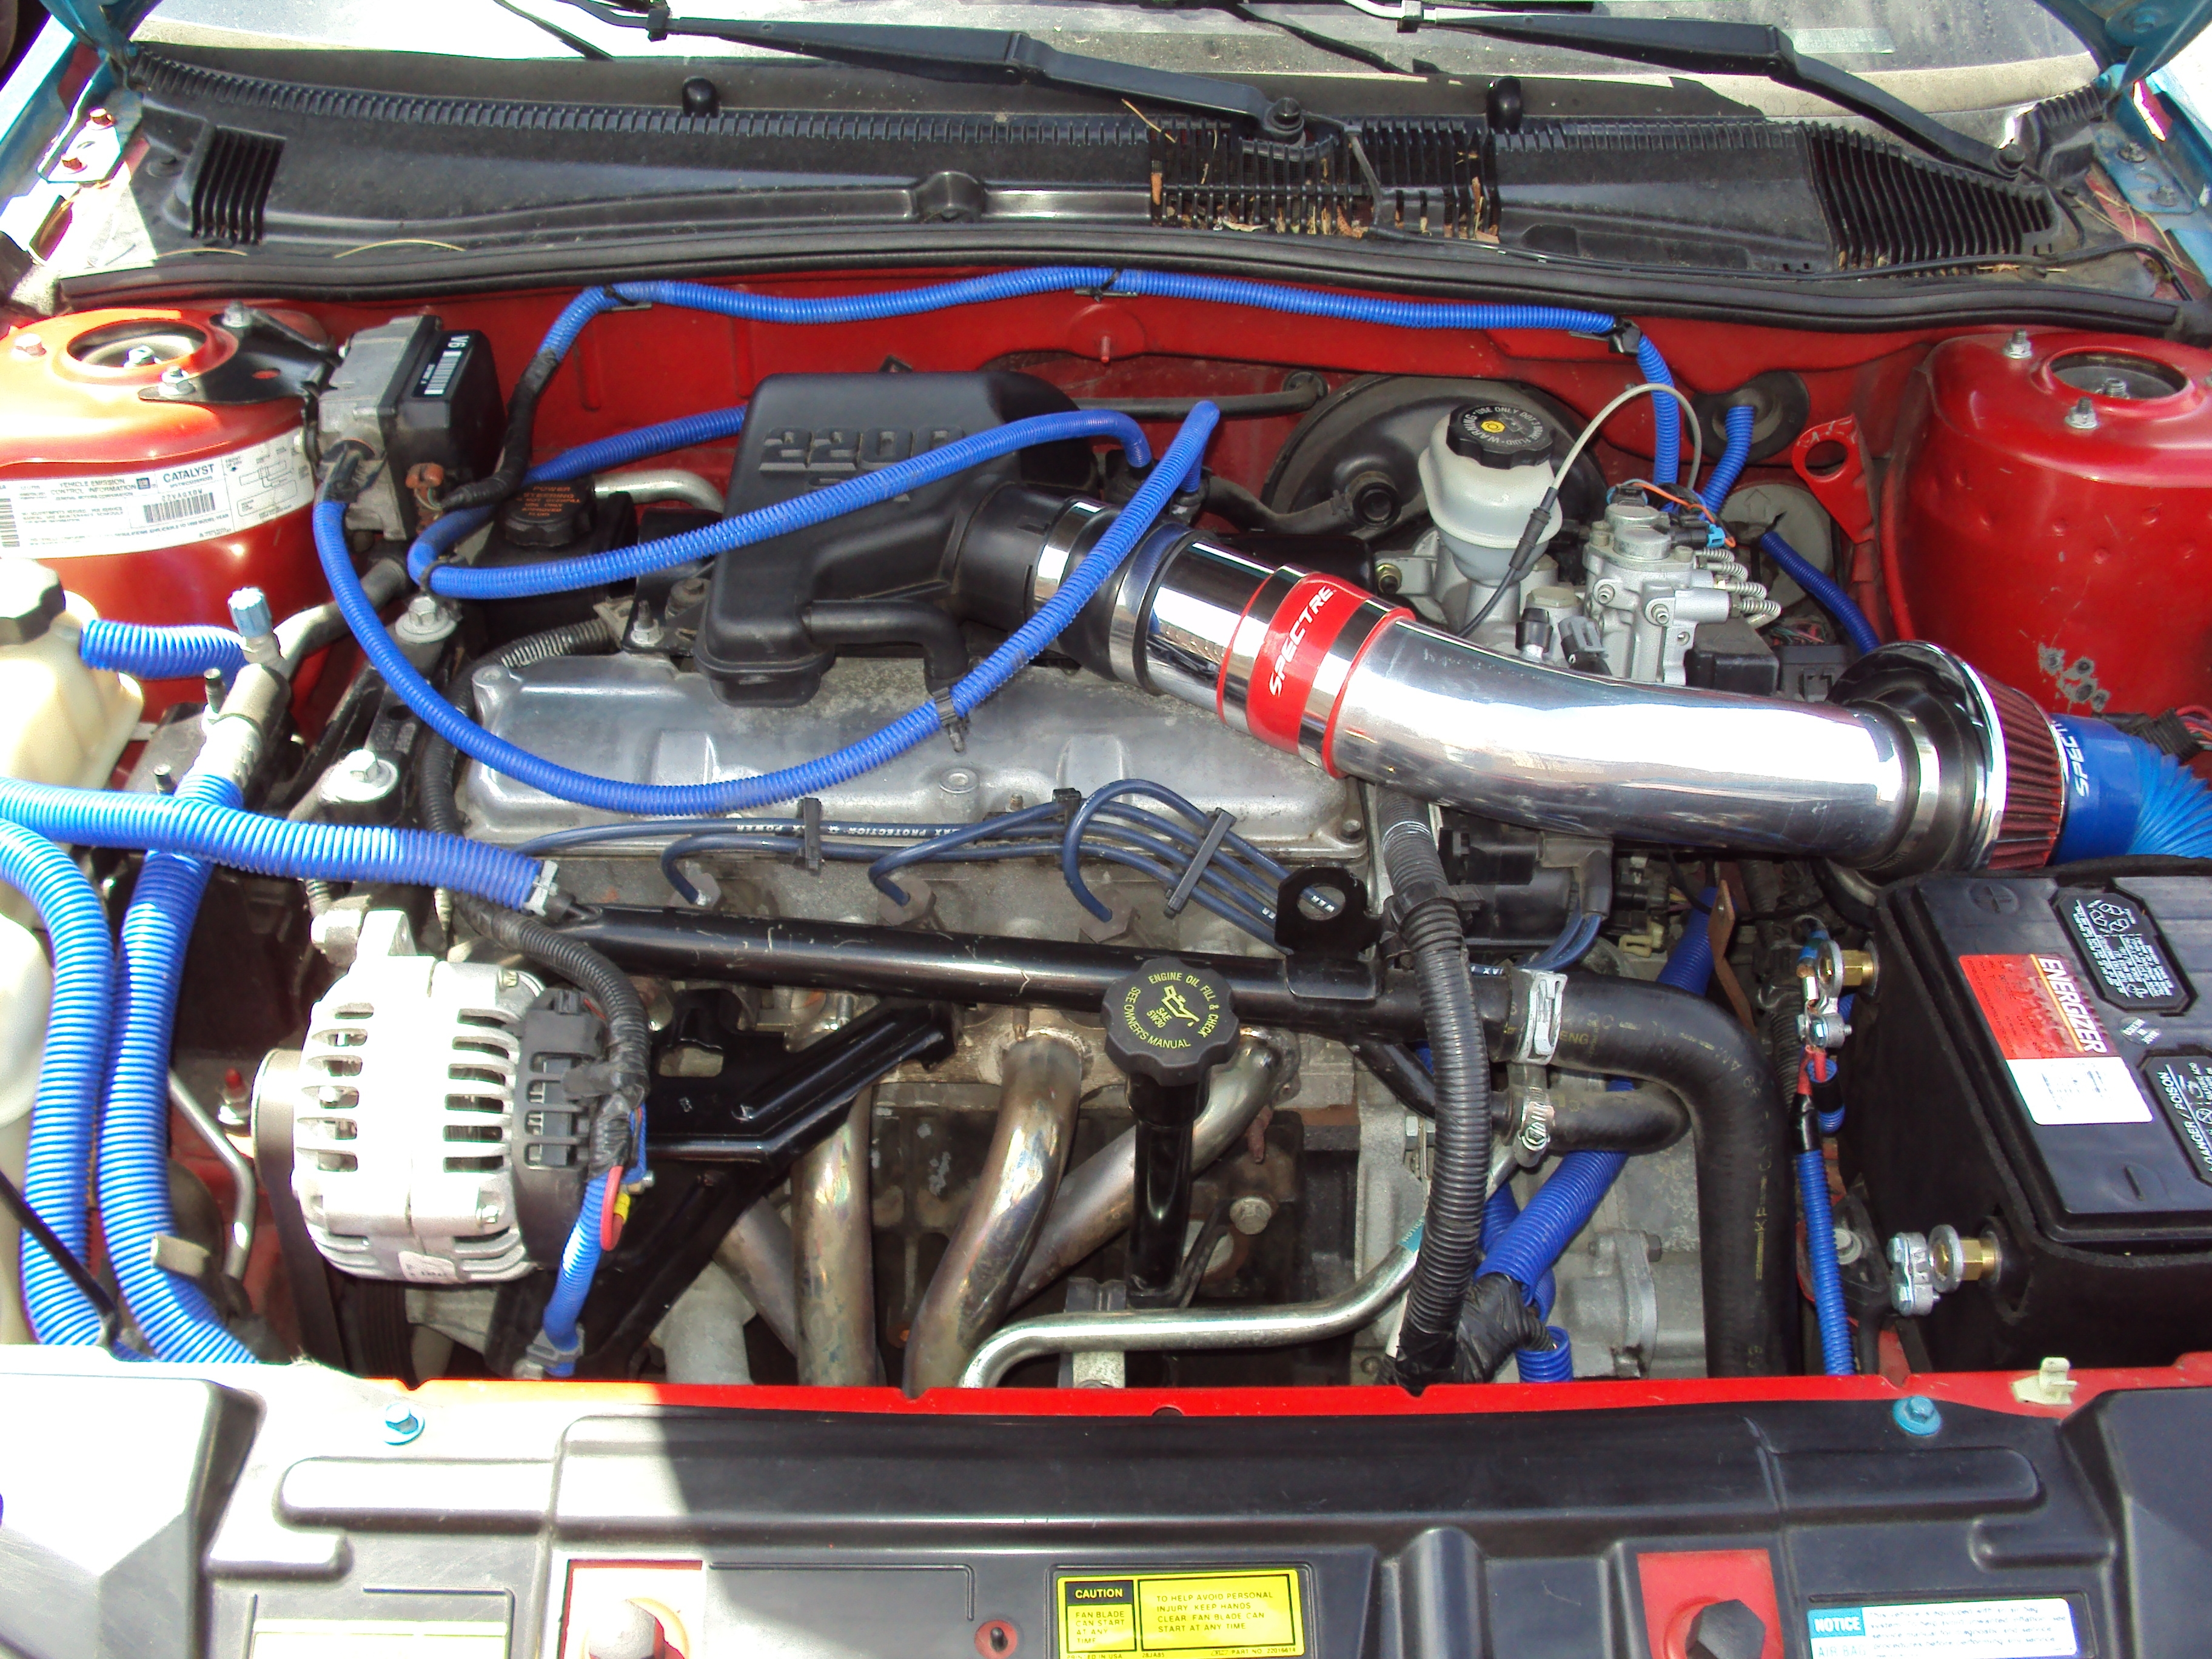 chevrolet cavalier engine 2 2 diagram inside diy enthusiasts rh okdrywall co